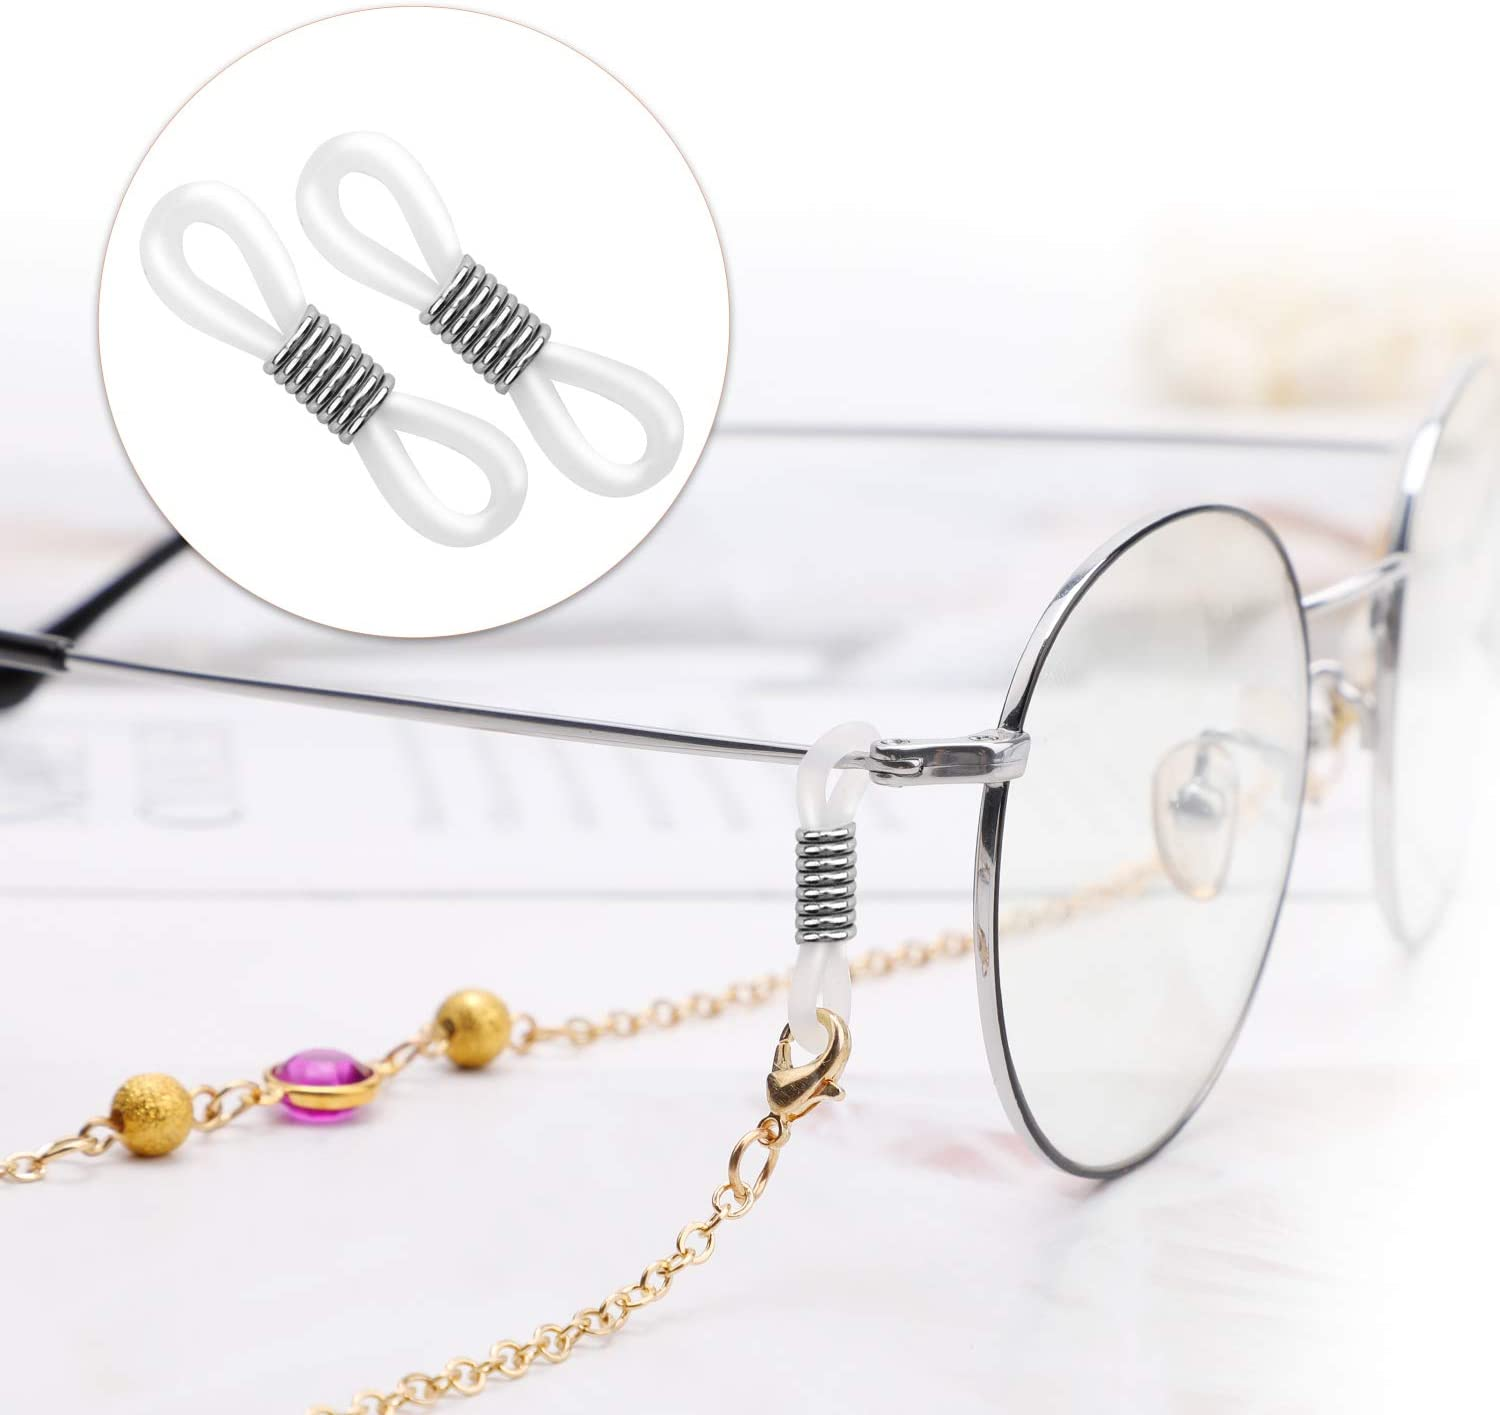 Hifot 40pcs Holder Chain Glasses Ends Spectacle Chain Strap Loop Ends of Glass Cord Ends of Eyeglass Chain Holder Silicone Lanyard Strap Silver